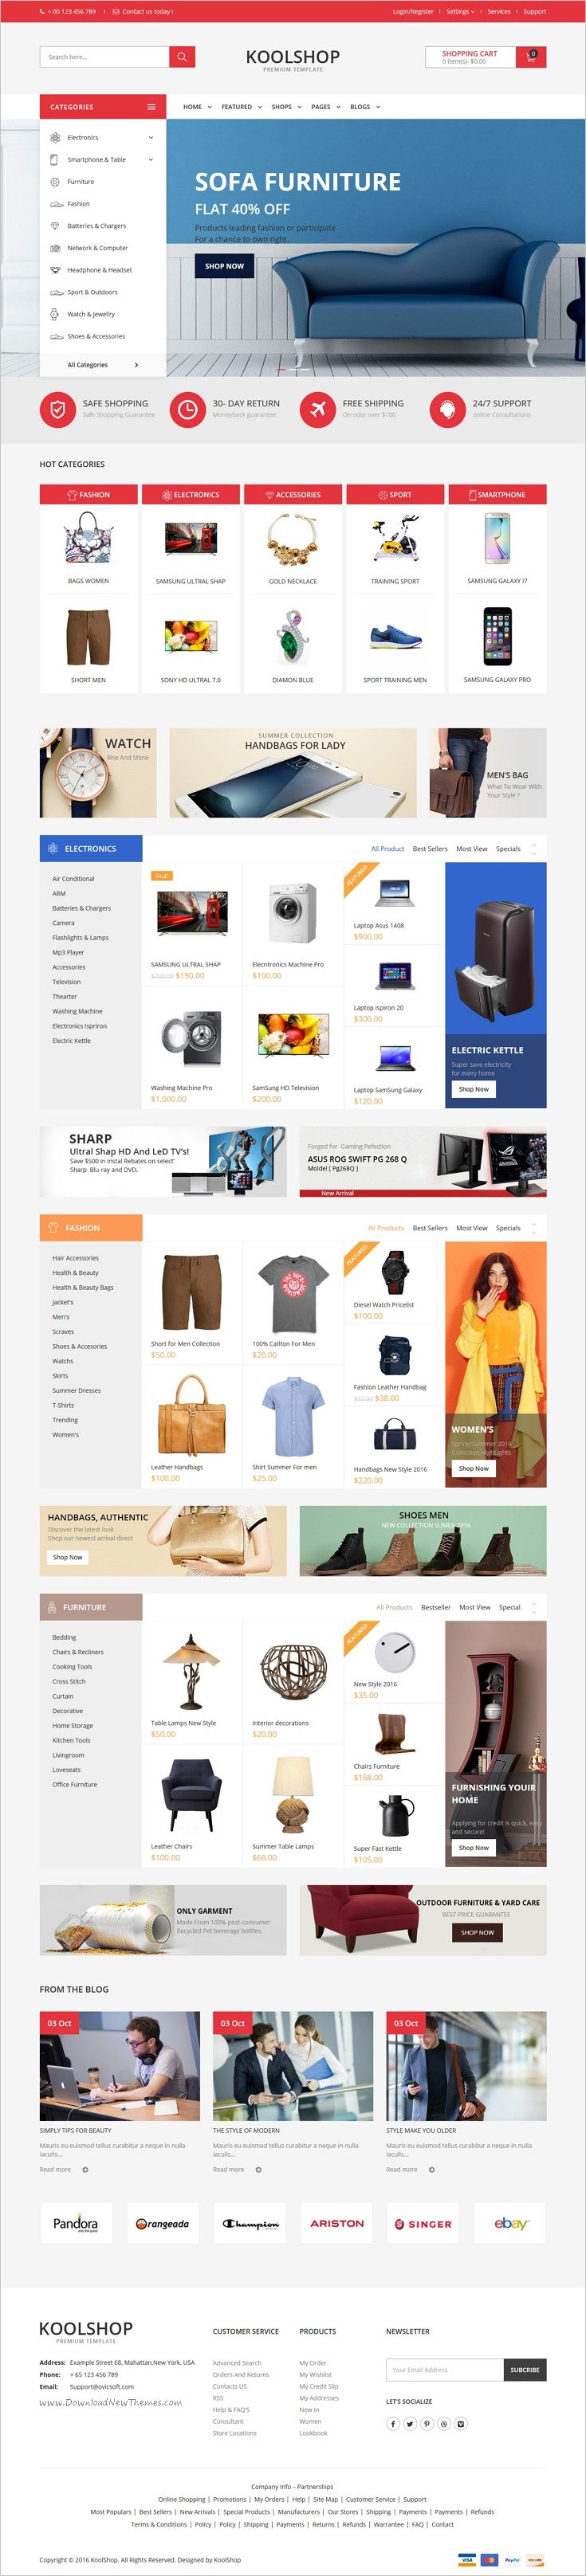 KoolShop is a modern, clean and professional multipurpose #WordPress @WooCommerce theme for stunning #eCommerce website with 12+ unqiue homepage layouts download now➩ https://themeforest.net/item/koolshop-multipurpose-woocommerce-wordpress-theme/18333085?ref=Datasata